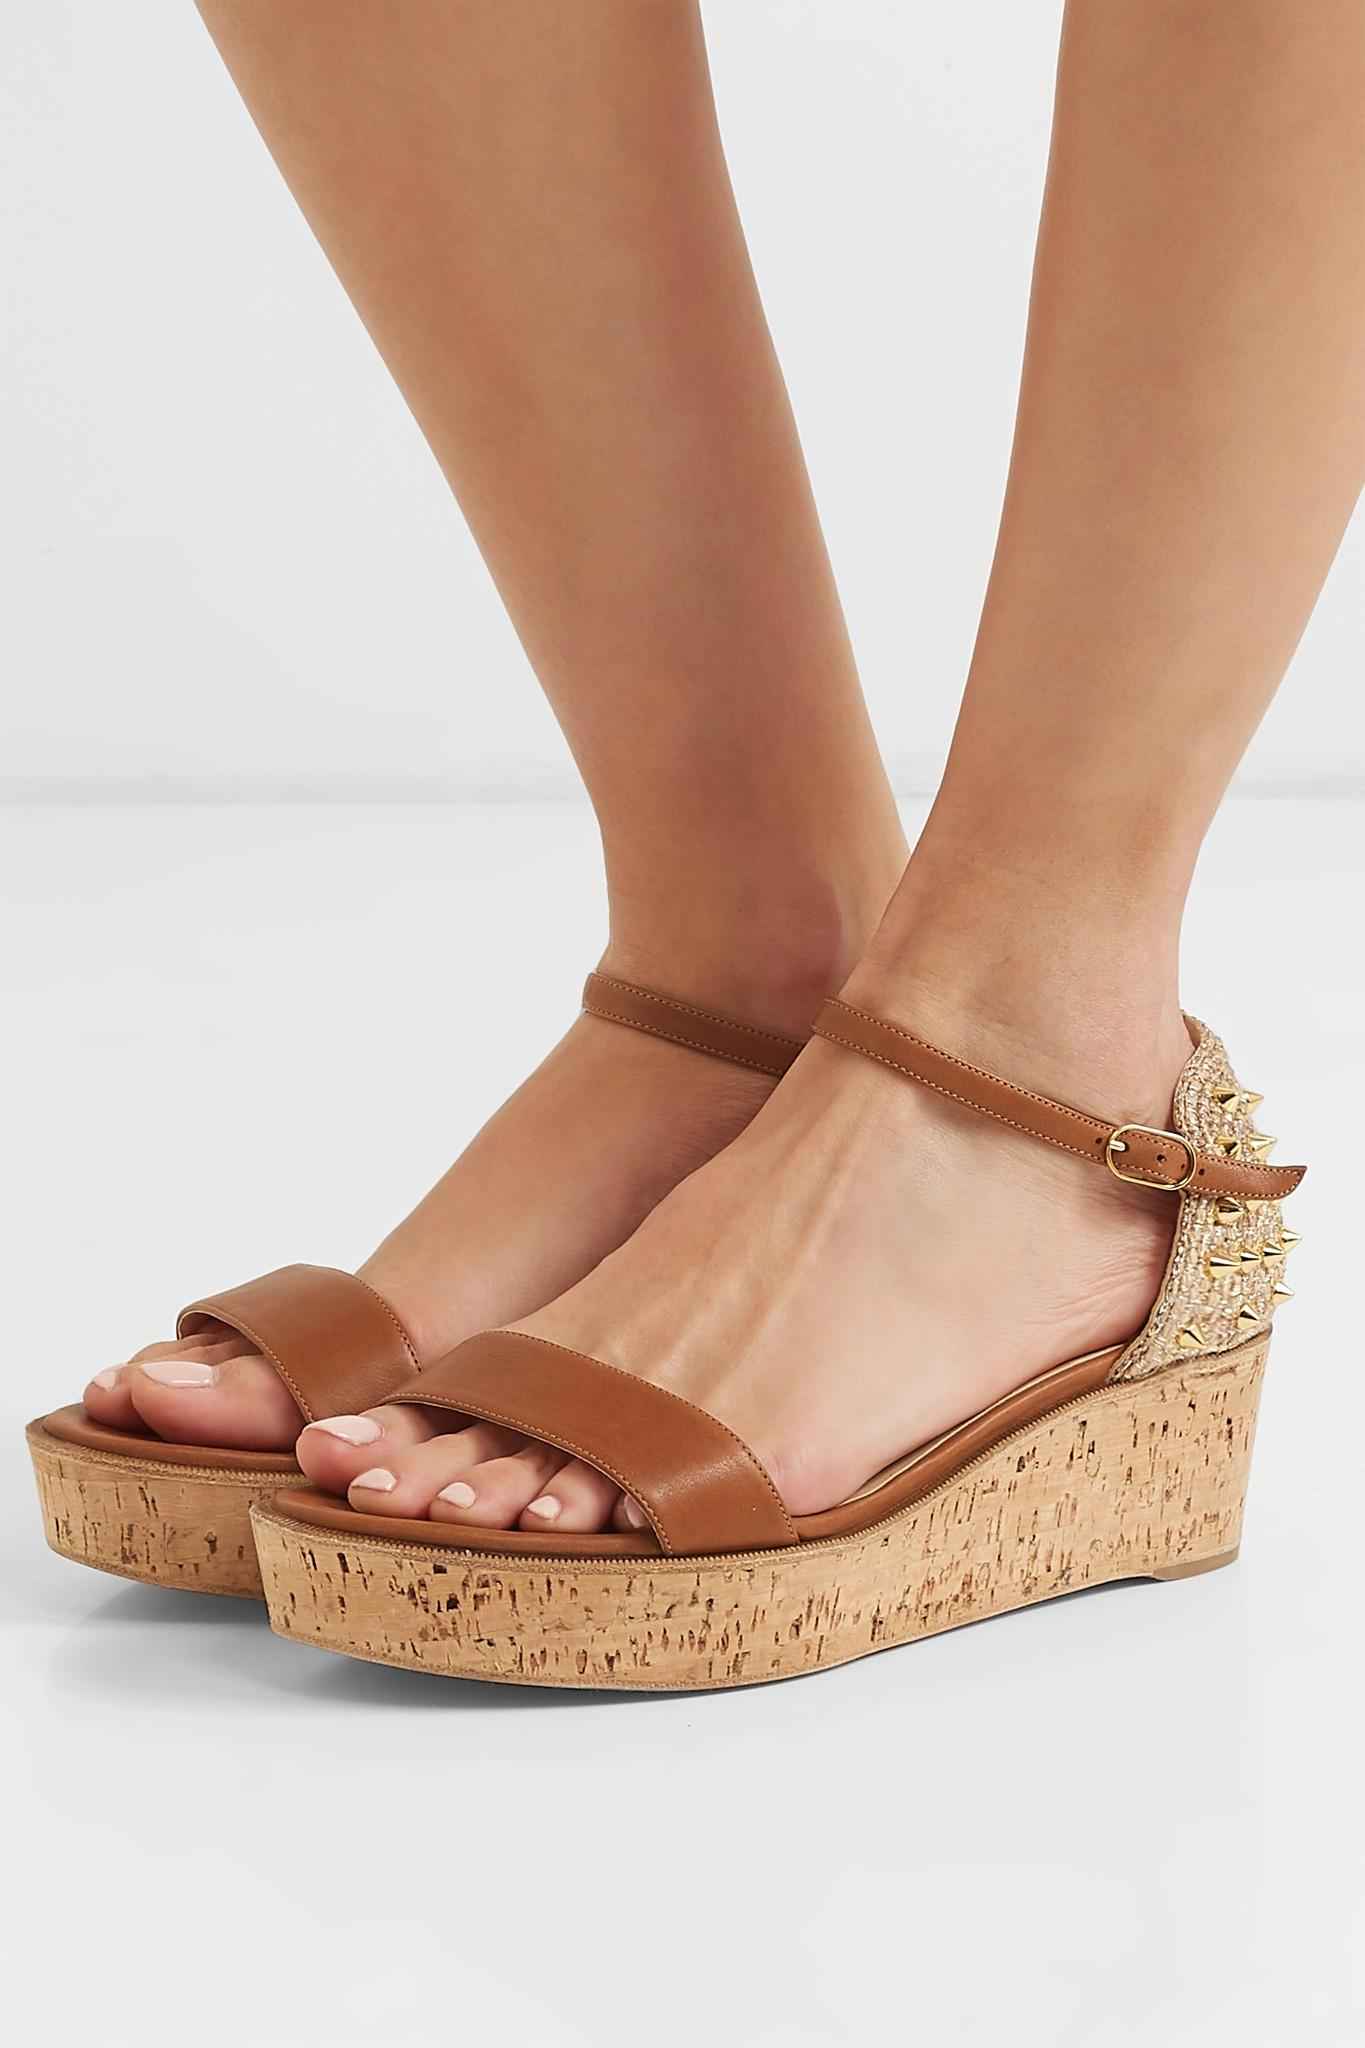 2ba6d2350f4e Christian Louboutin - Brown Bellamonica 60 Spiked Leather Espadrille Wedge  Sandals - Lyst. View fullscreen